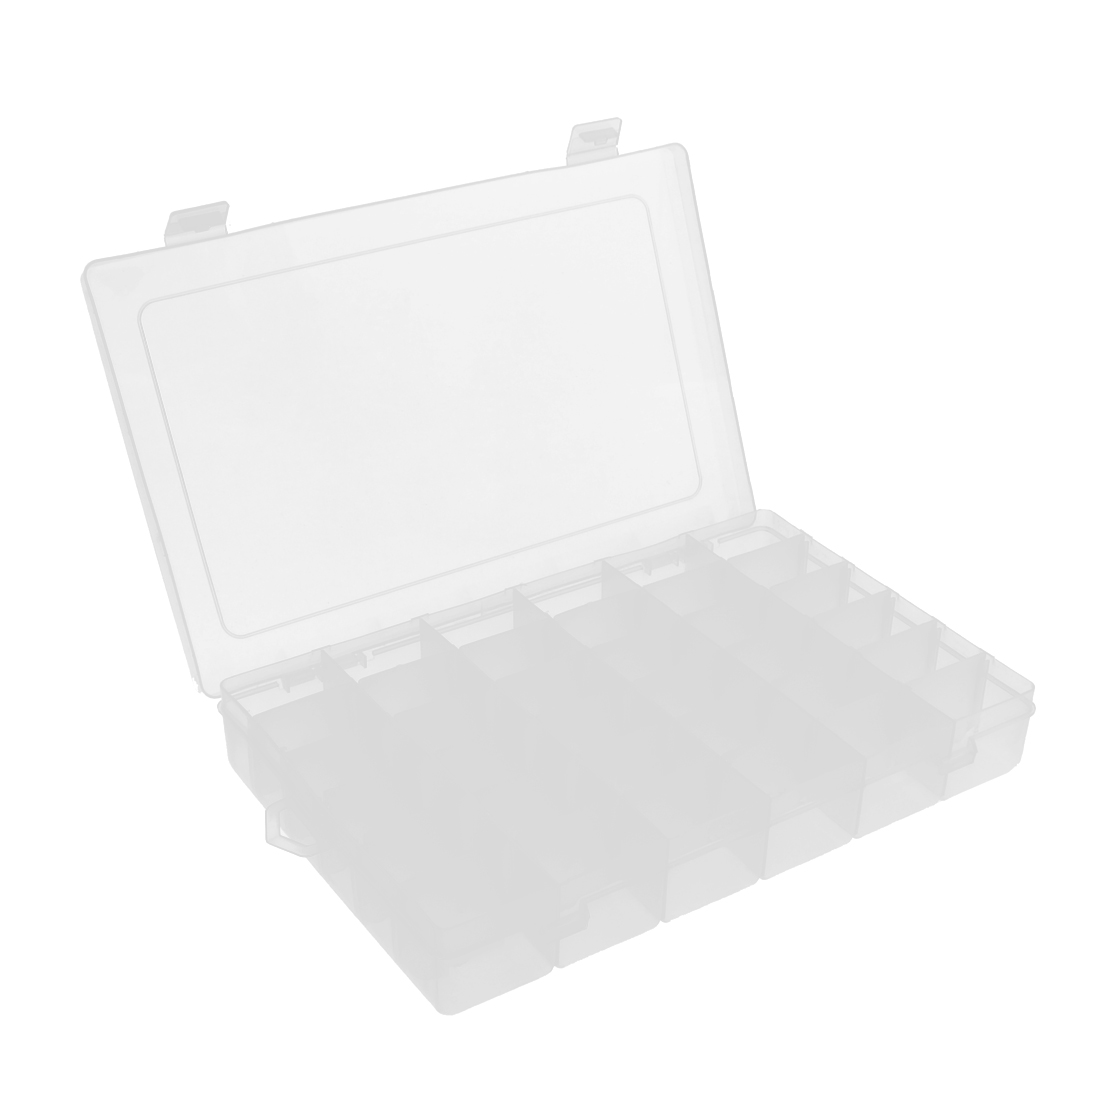 Plastic 36 Grid Electronic Component Storage DIY Box Case Container